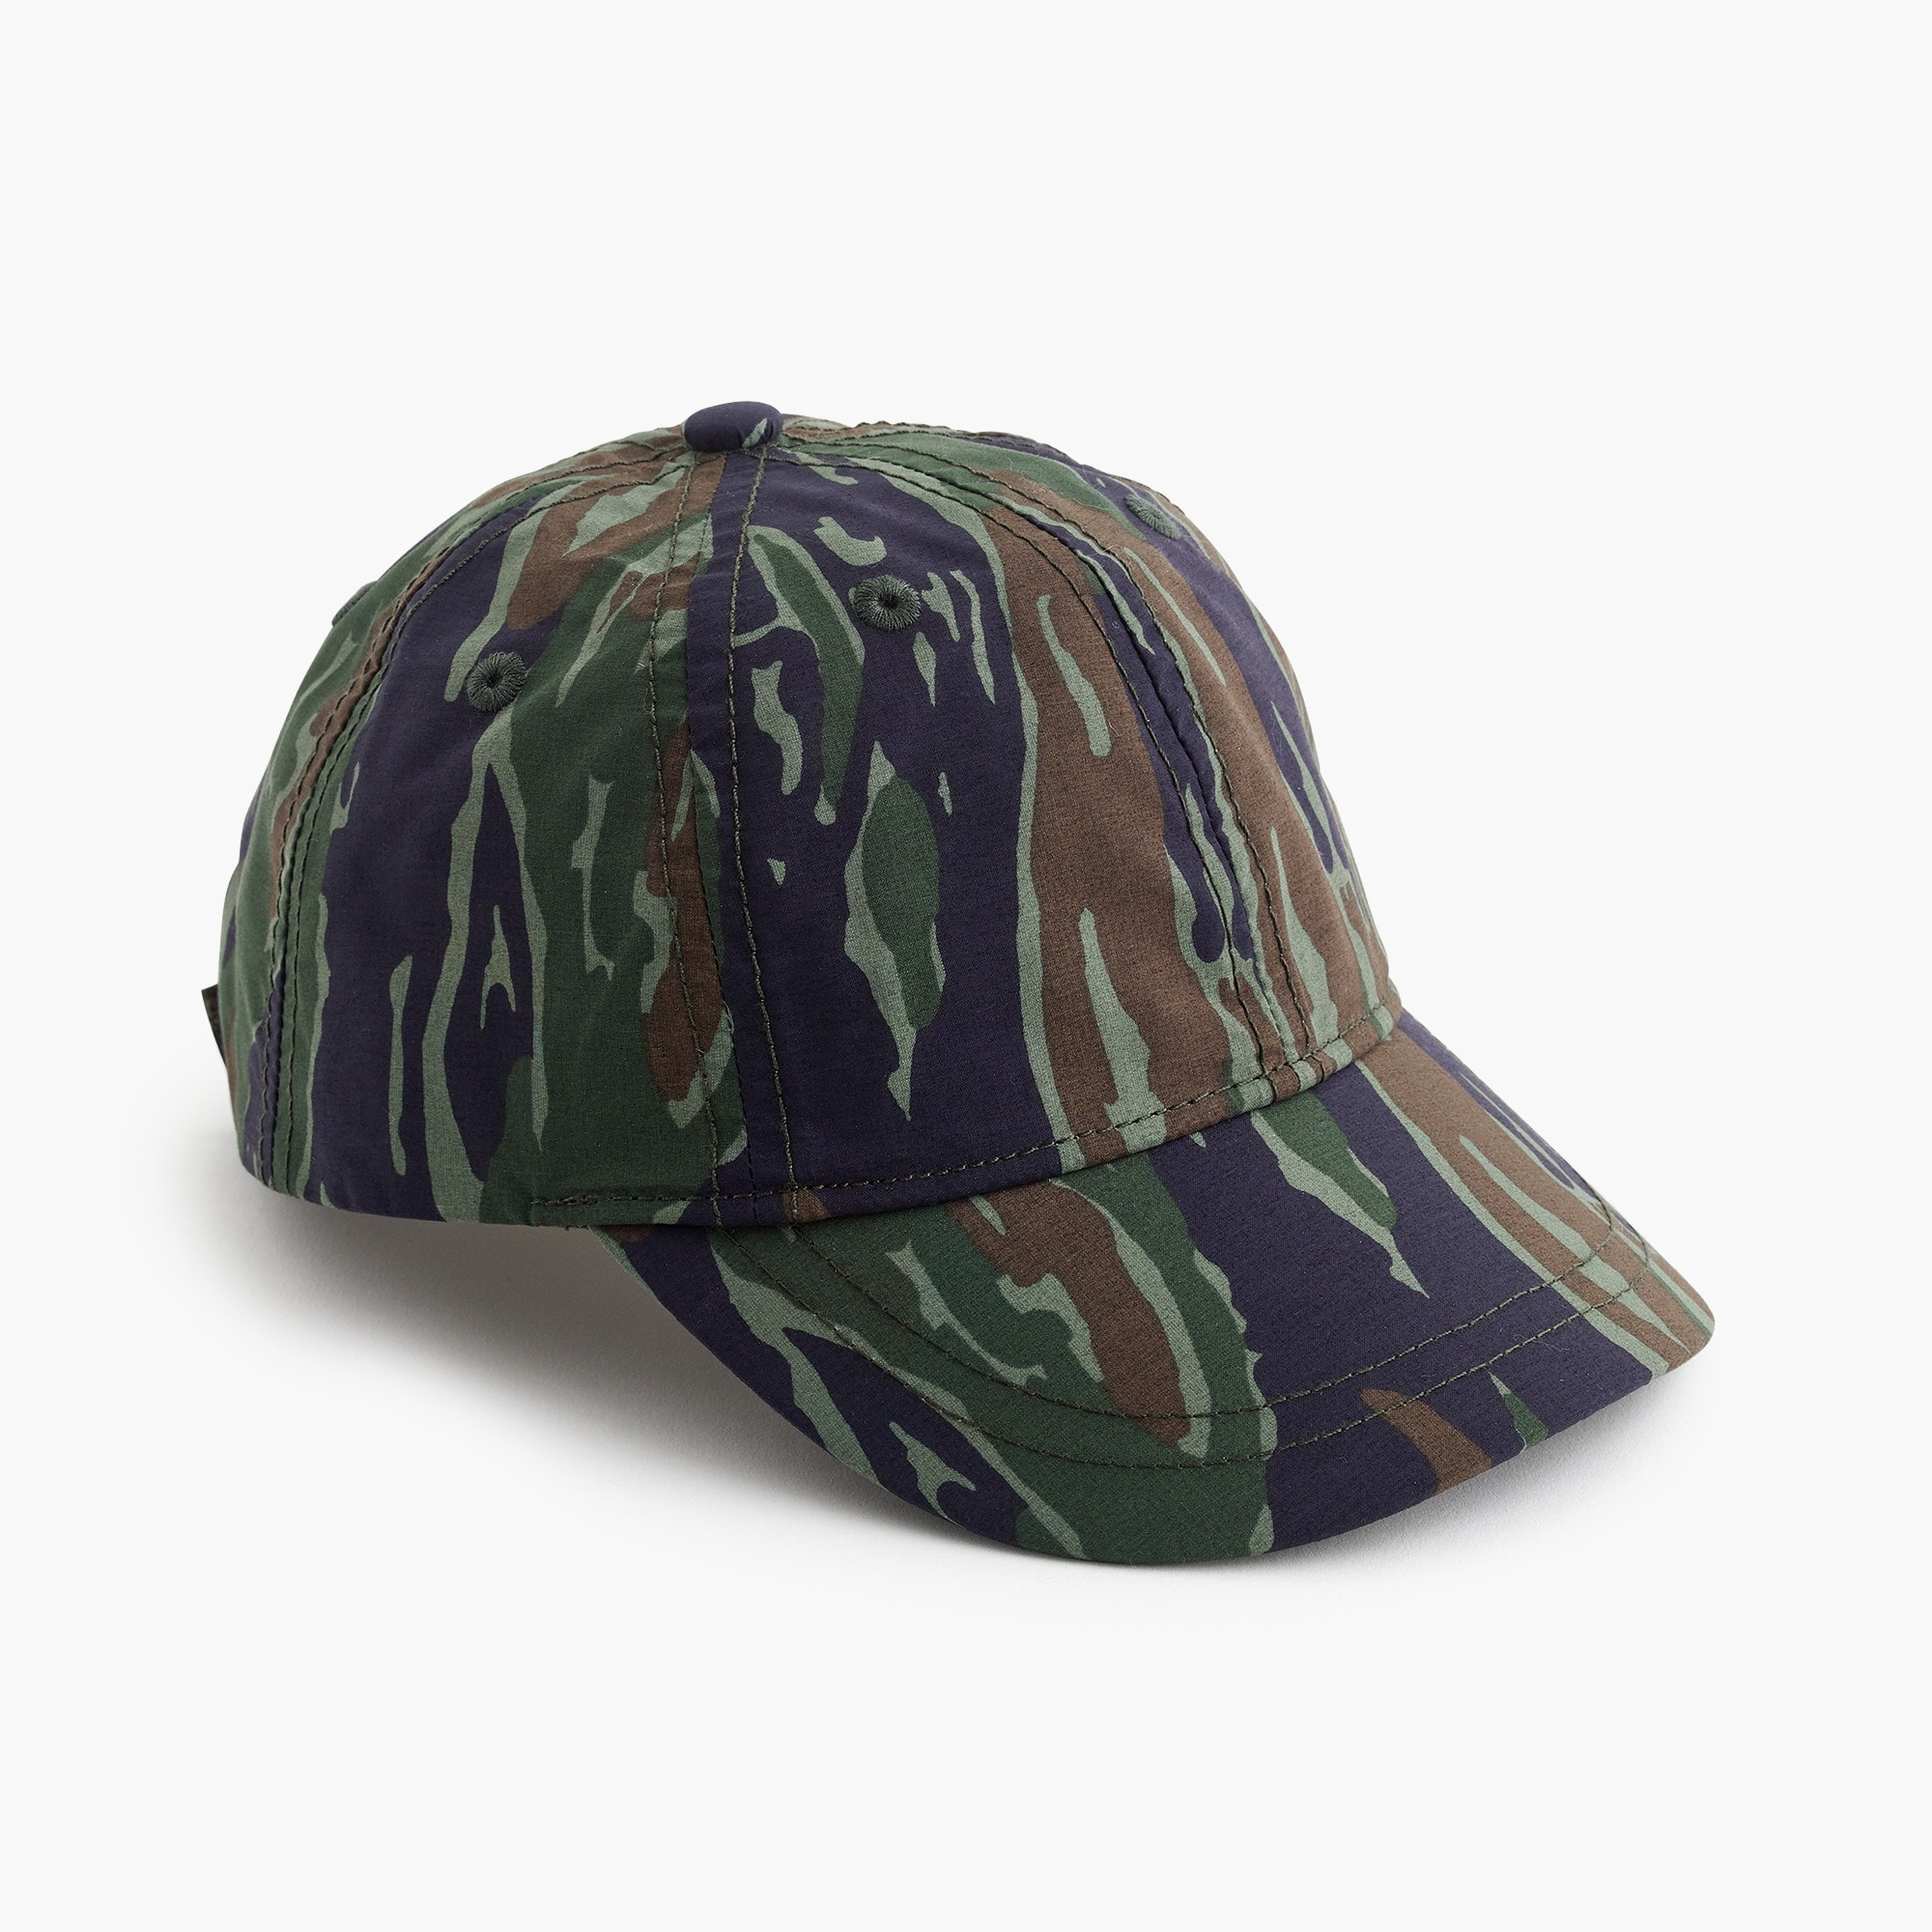 Kids' quick-drying baseball cap in camo boy accessories c